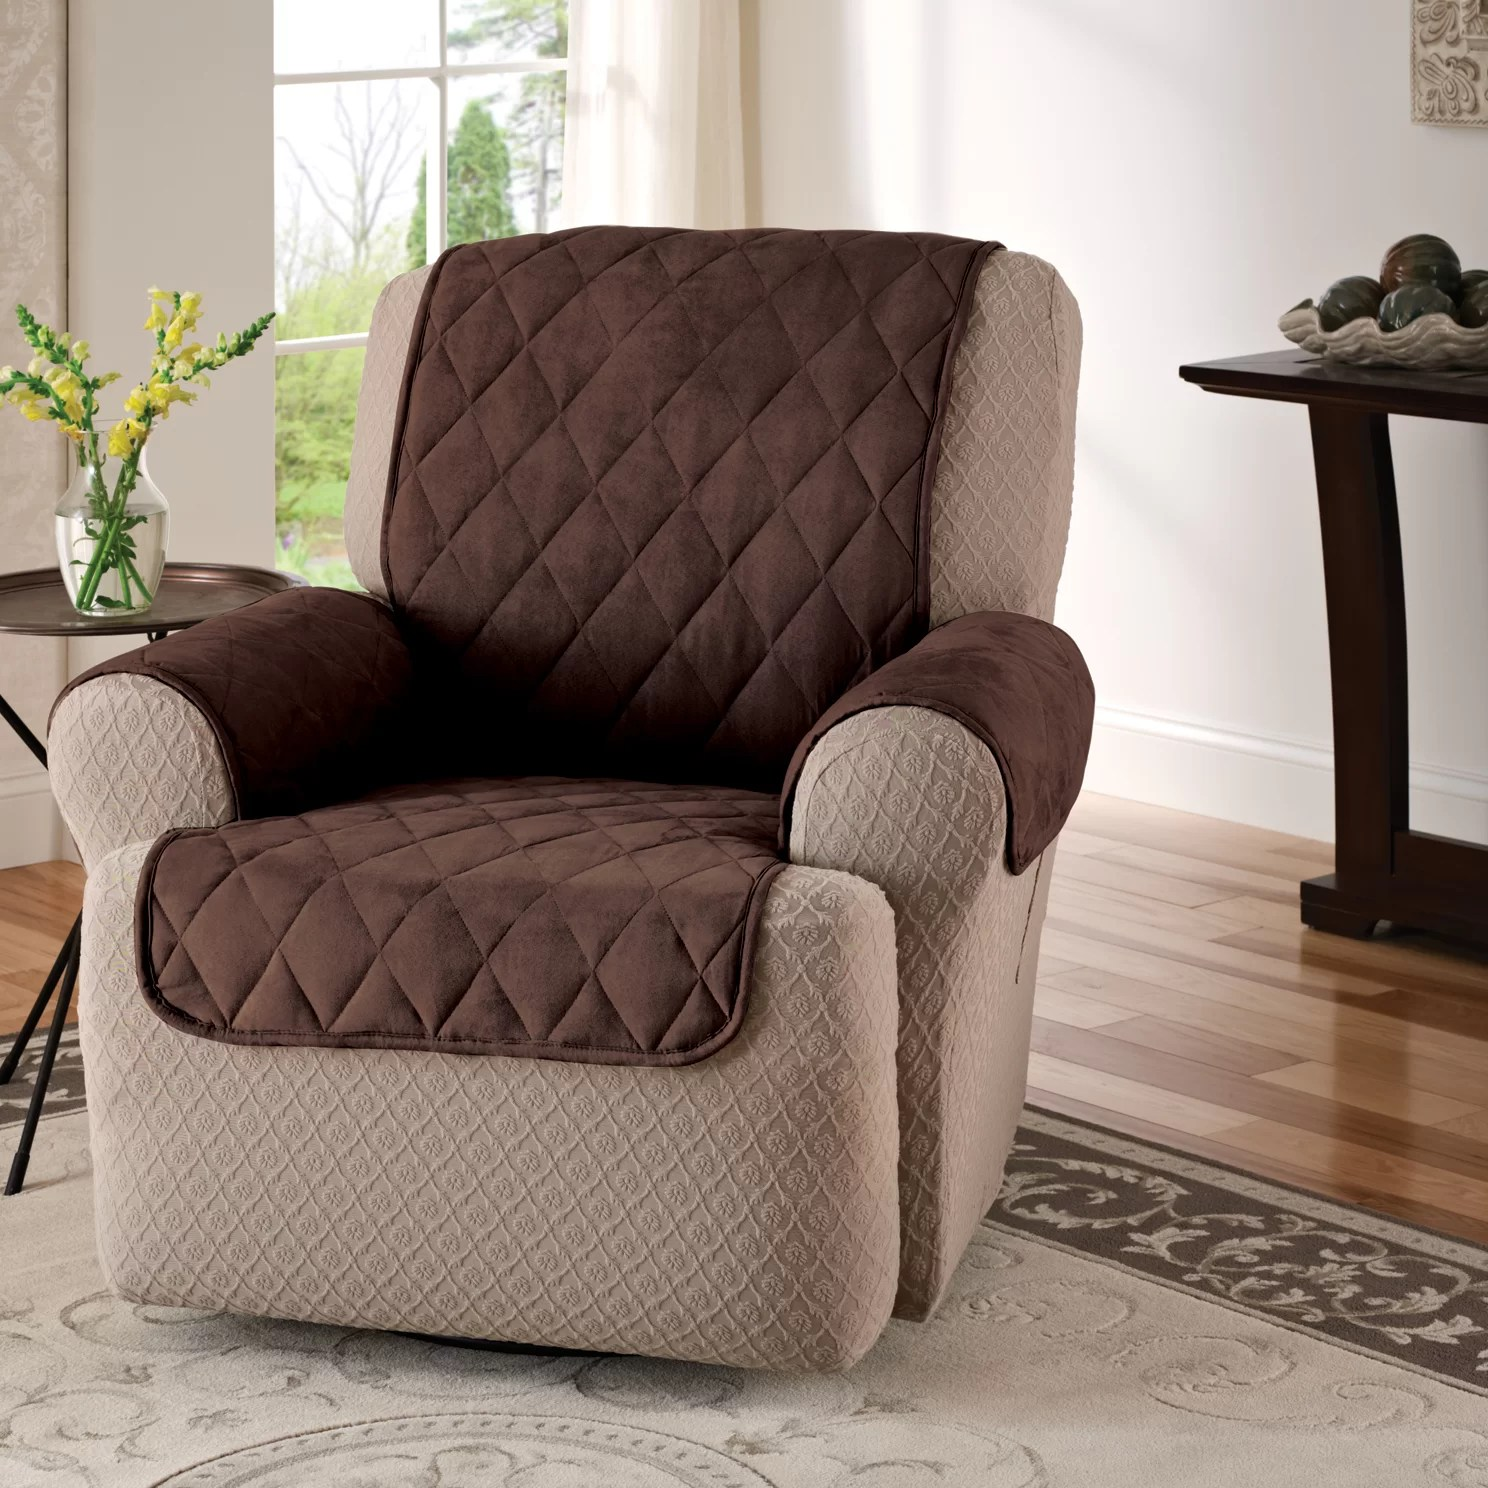 faux leather recliner chair covers for makeup room innovative textile solutions suede furniture